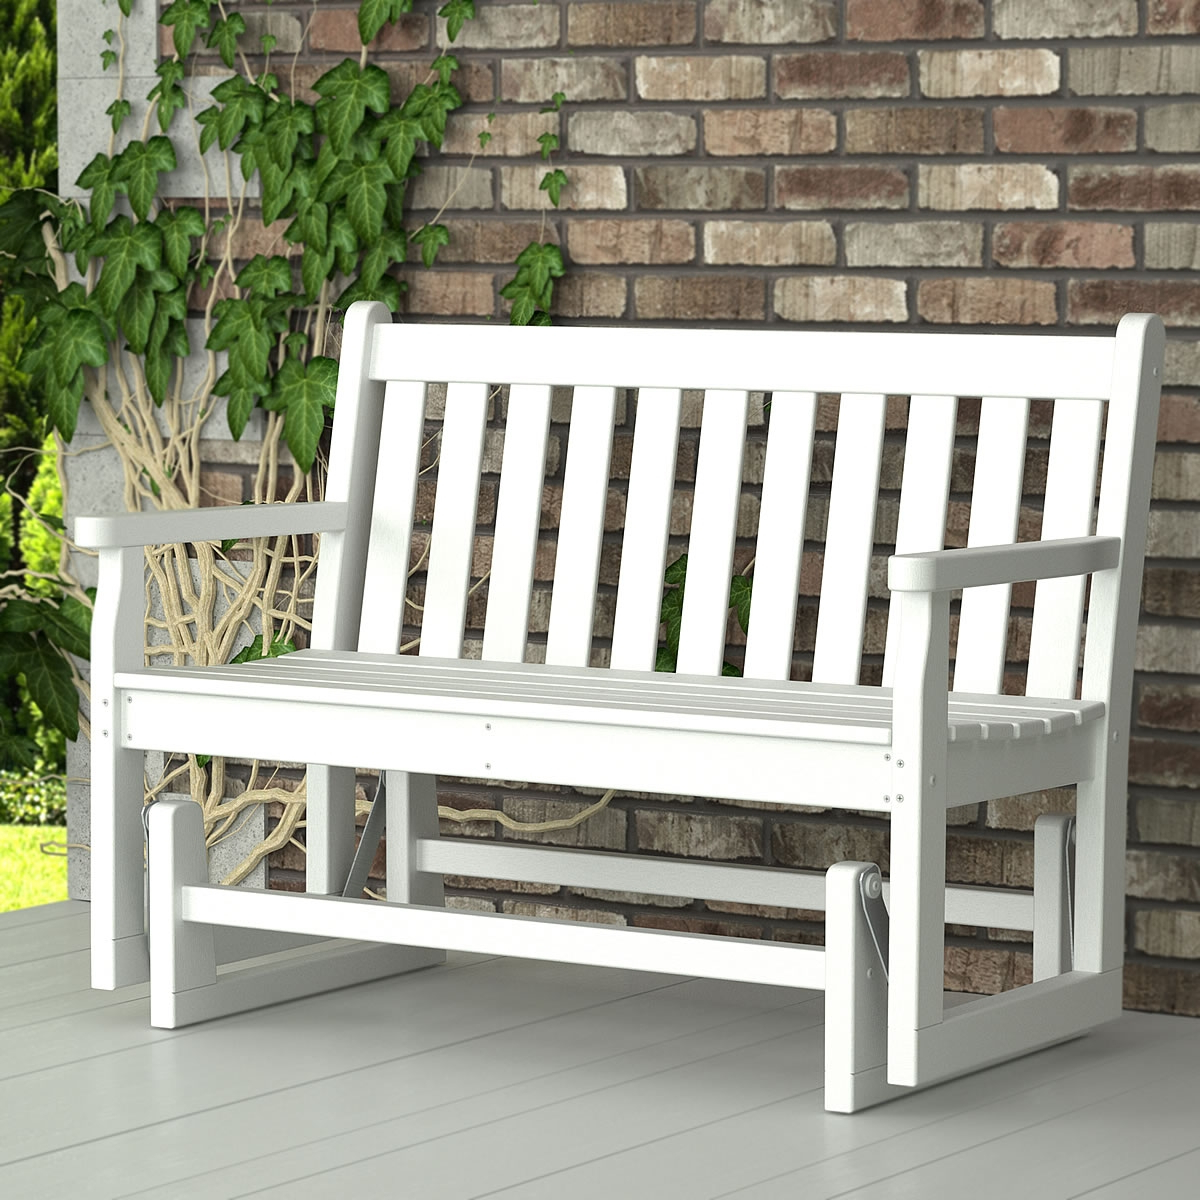 Hardwood Porch Glider Benches Regarding Most Current Furniture: White Wooden Porch Glider For Outdoor Furniture Ideas (View 13 of 30)